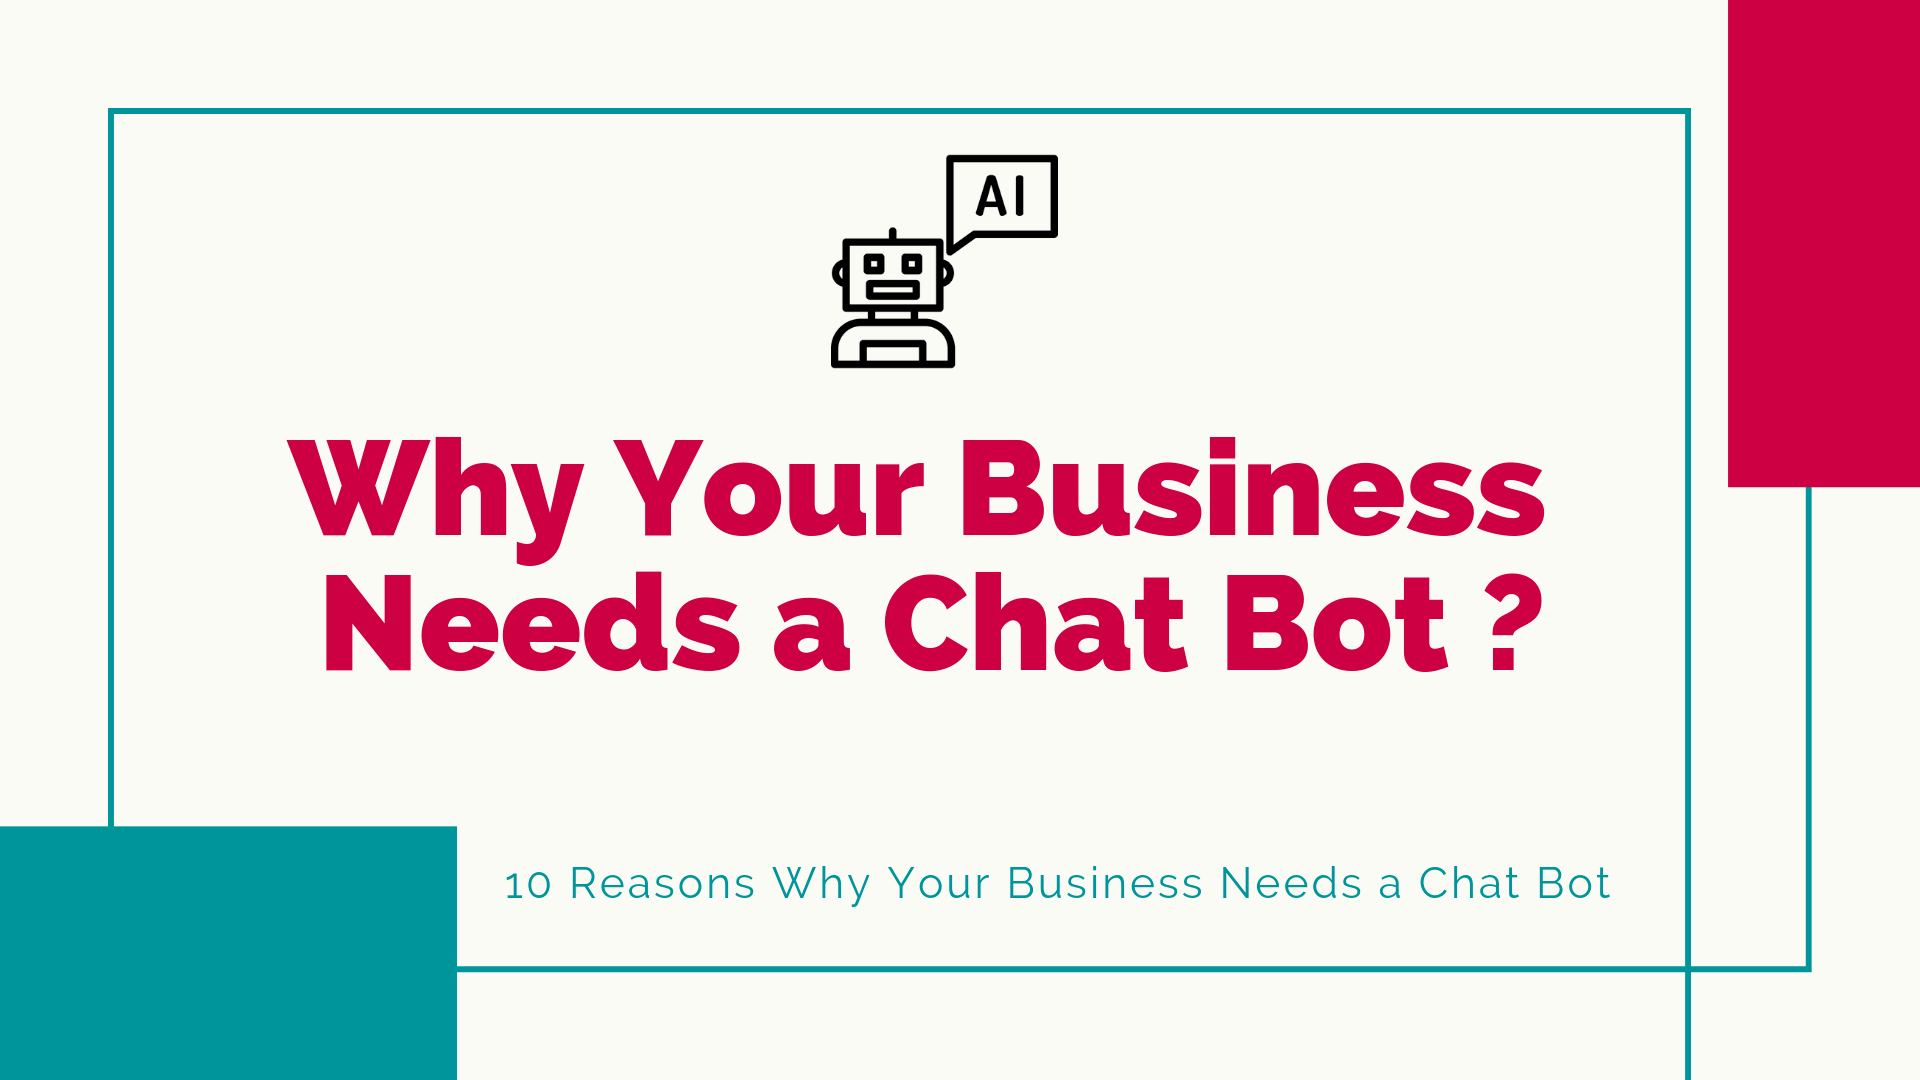 10 reasons why your business needs a chatbot